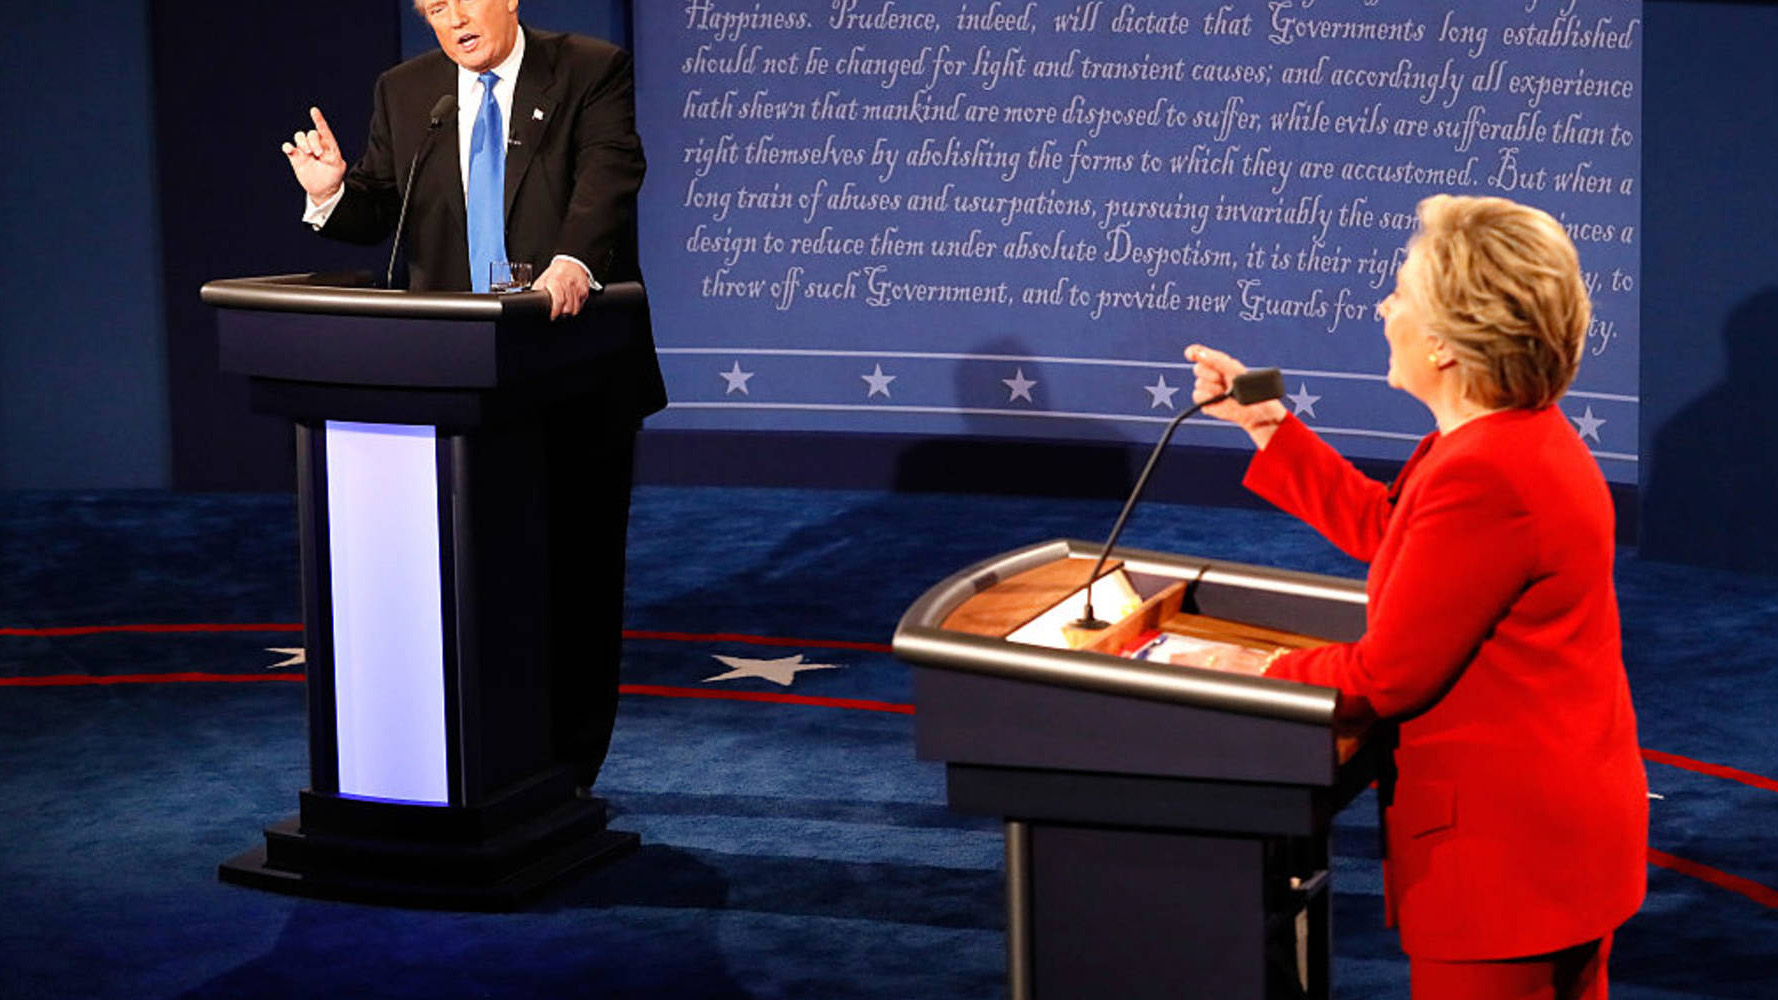 Trump versus Clinton on the economy: Highlights from the first presidential debate